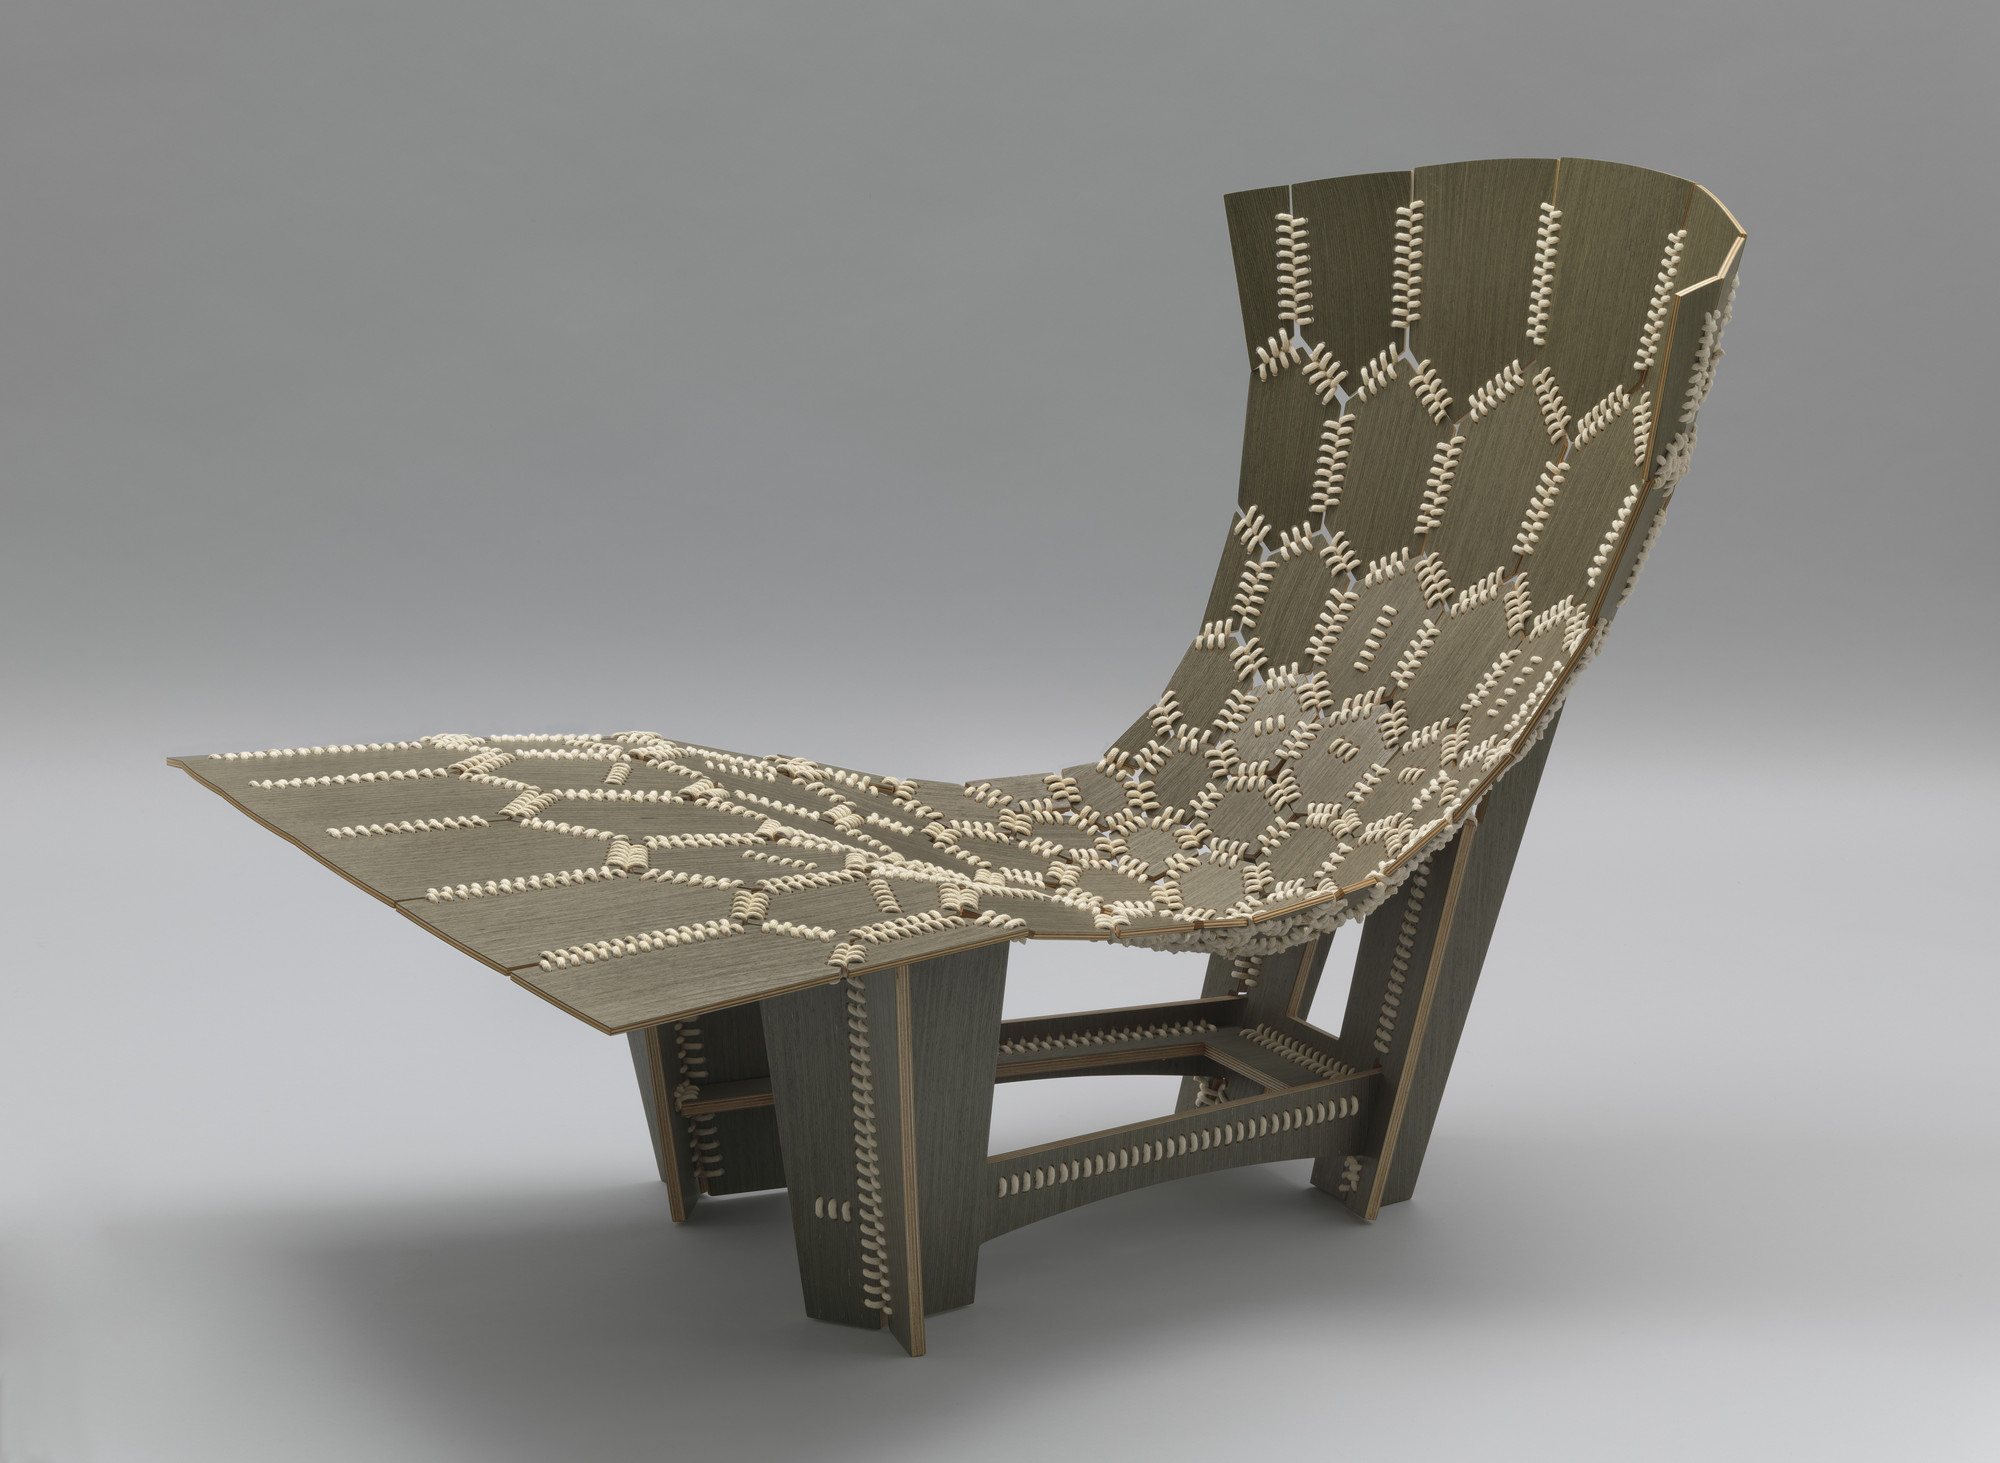 Emiliano Godoy. Knit Chair. 2004